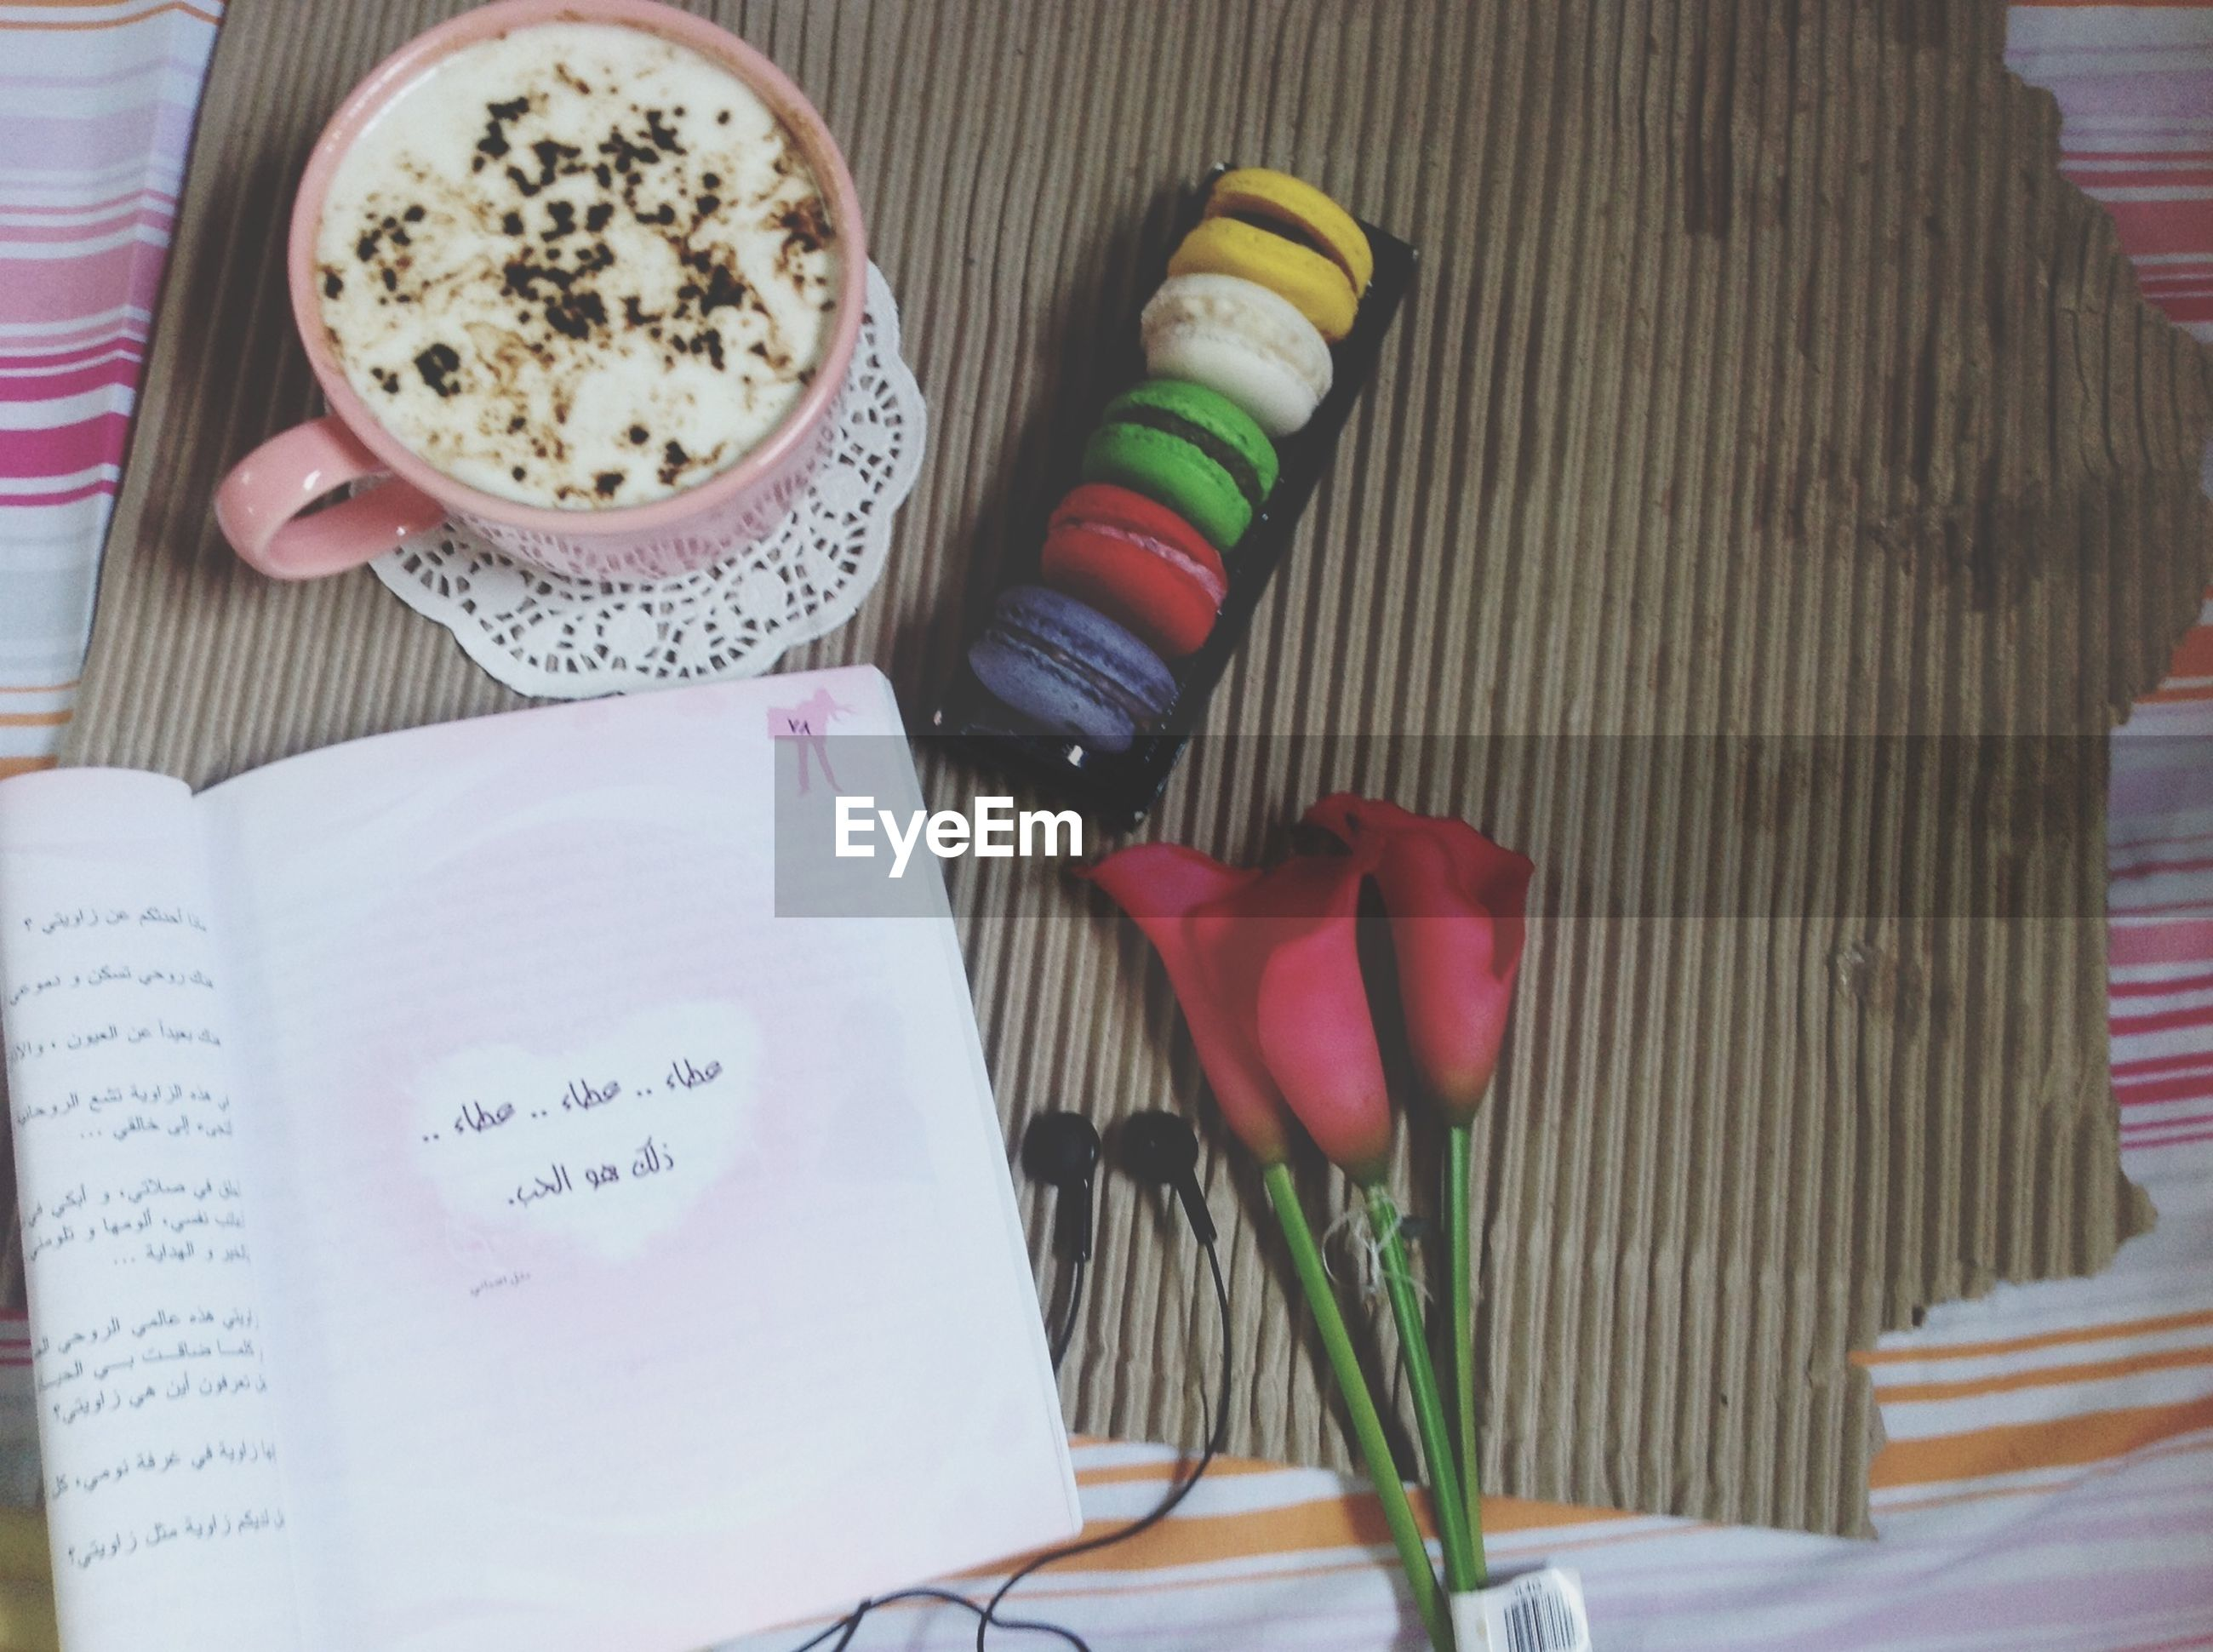 indoors, food and drink, table, freshness, still life, food, high angle view, drink, book, refreshment, healthy eating, coffee cup, close-up, plate, ready-to-eat, bowl, paper, fork, text, coffee - drink